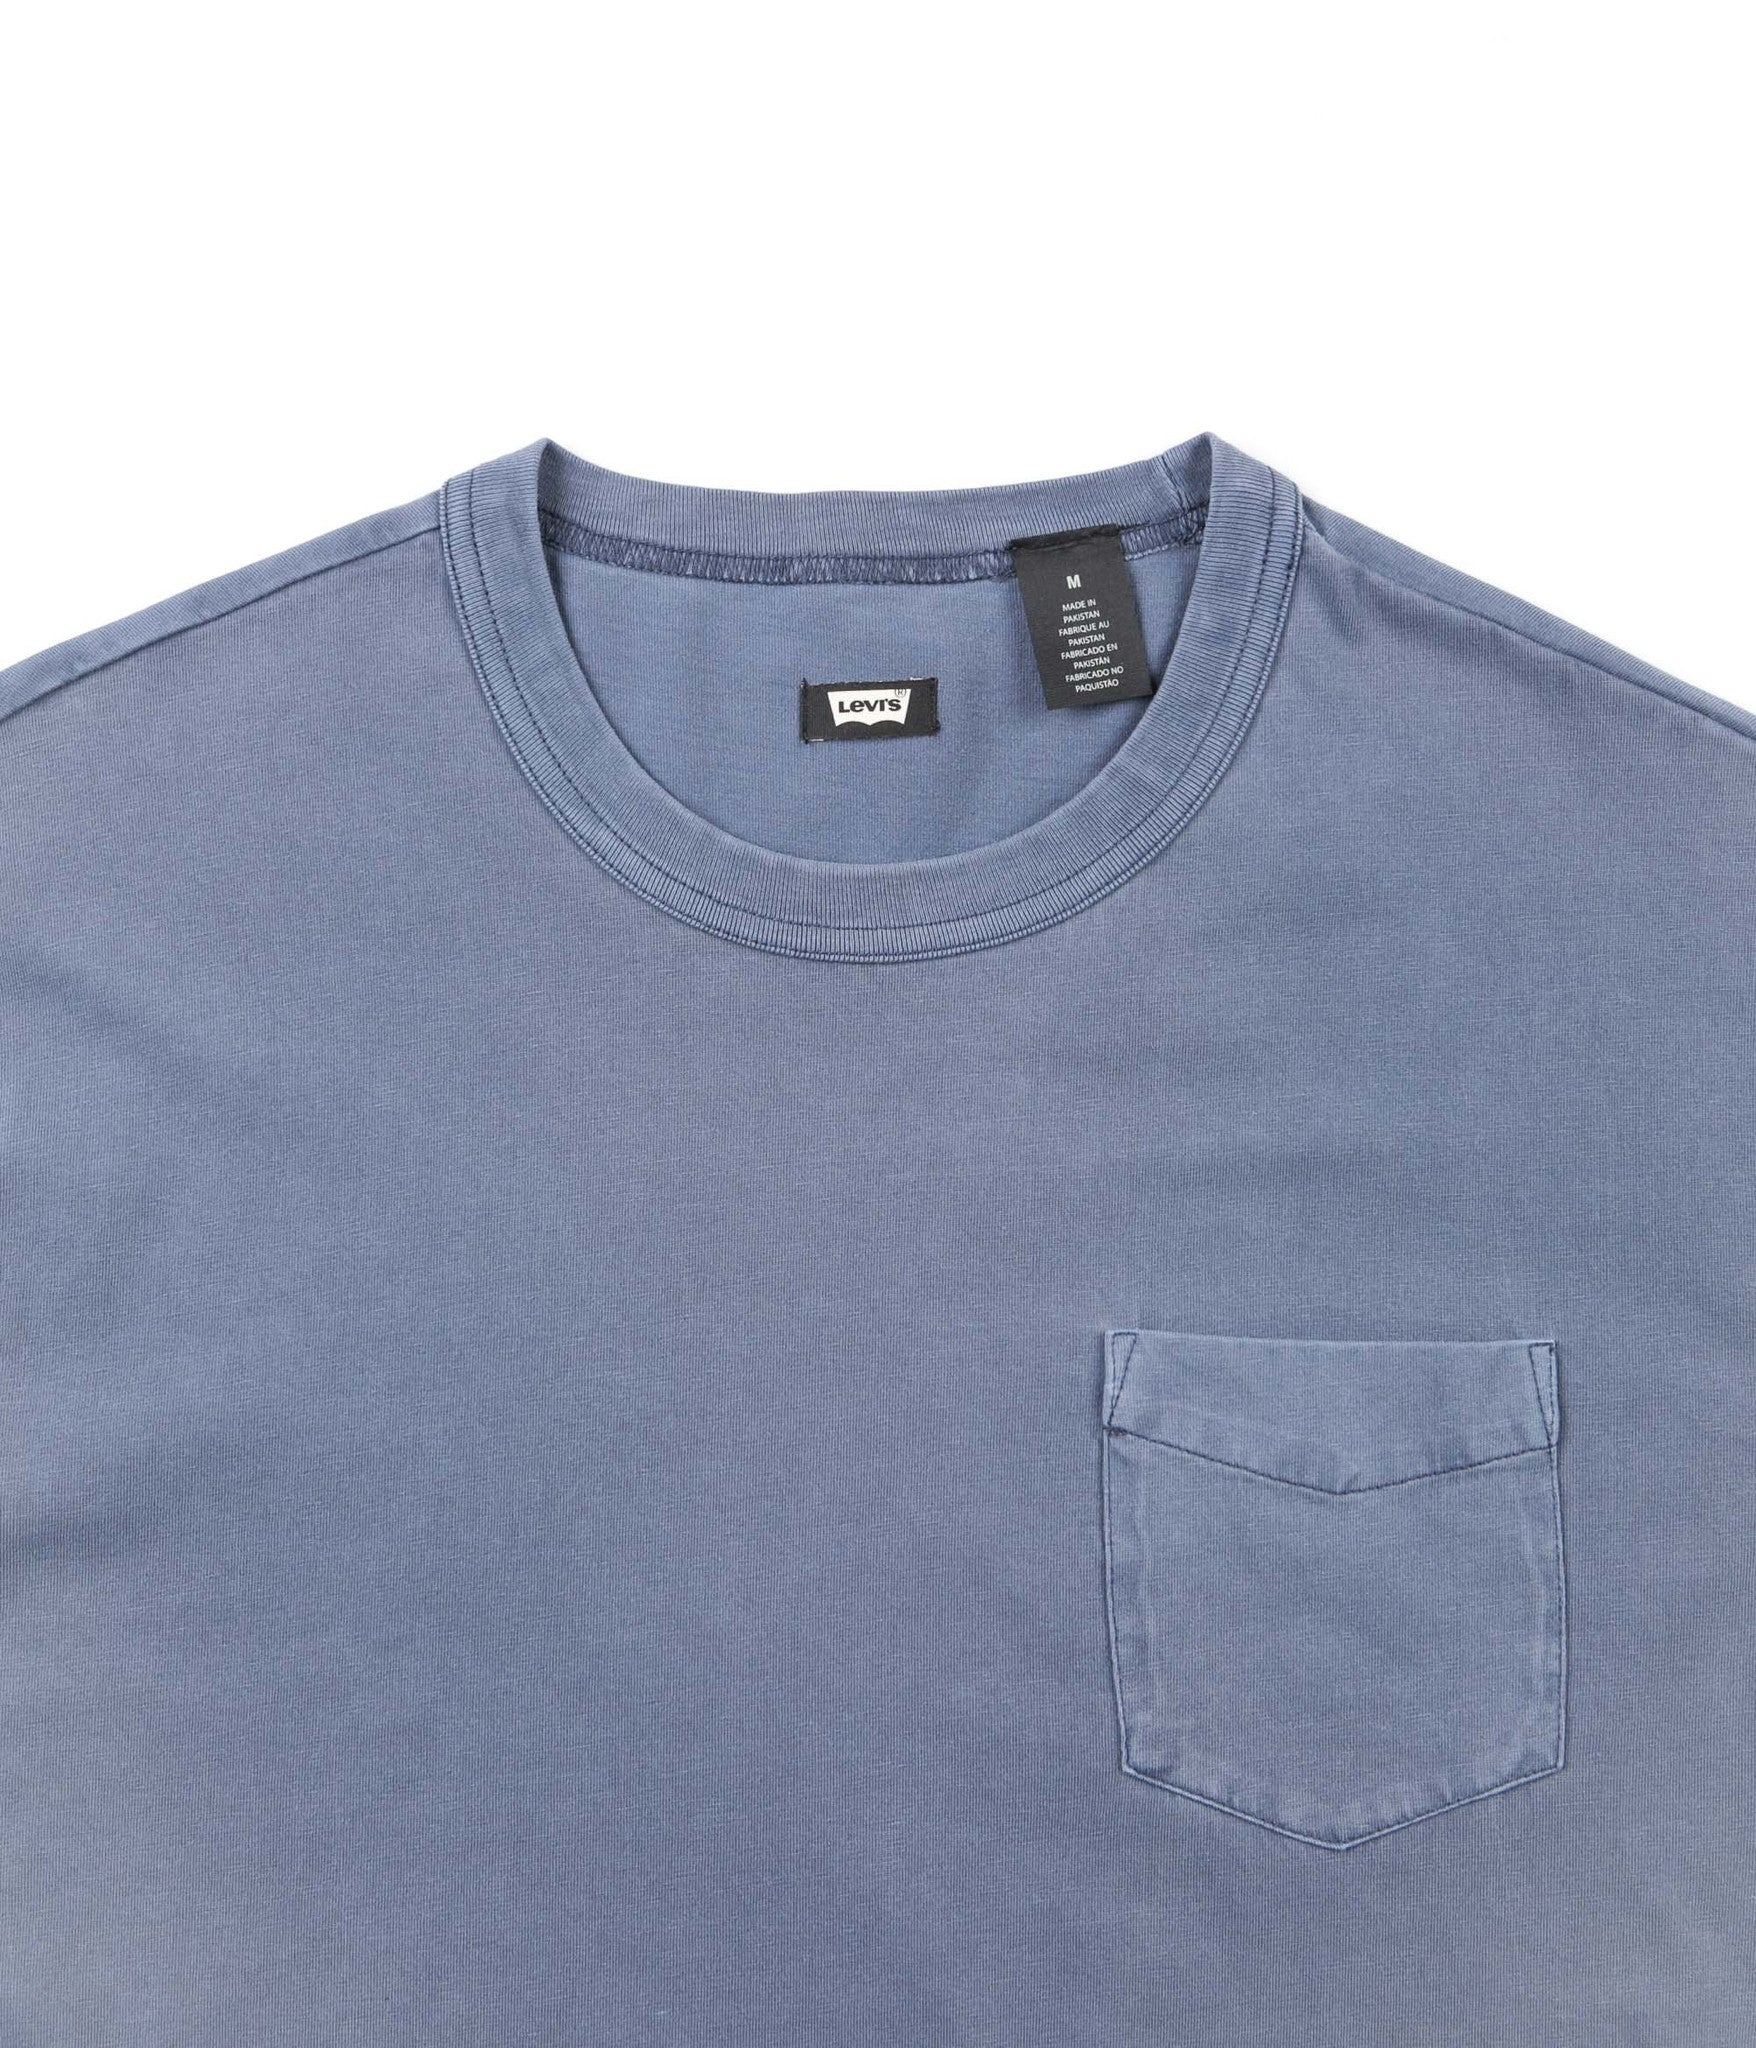 Levi's® Skate Pocket T-Shirt - Dress Blues